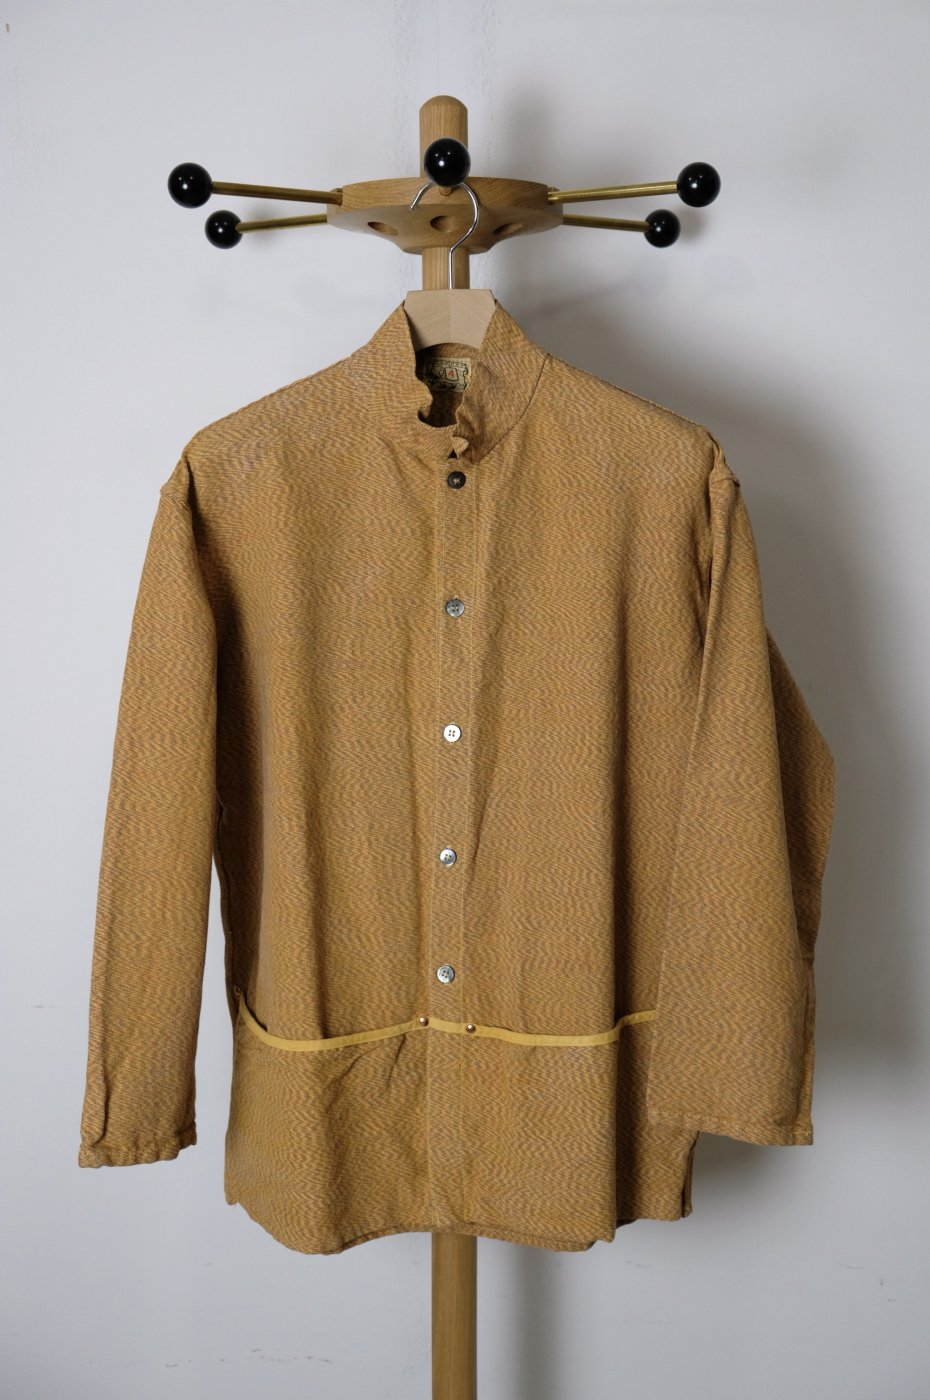 TENDER Co. 17AW-Type 440Folded Pocket Shirt/Yellow Ochre-men's